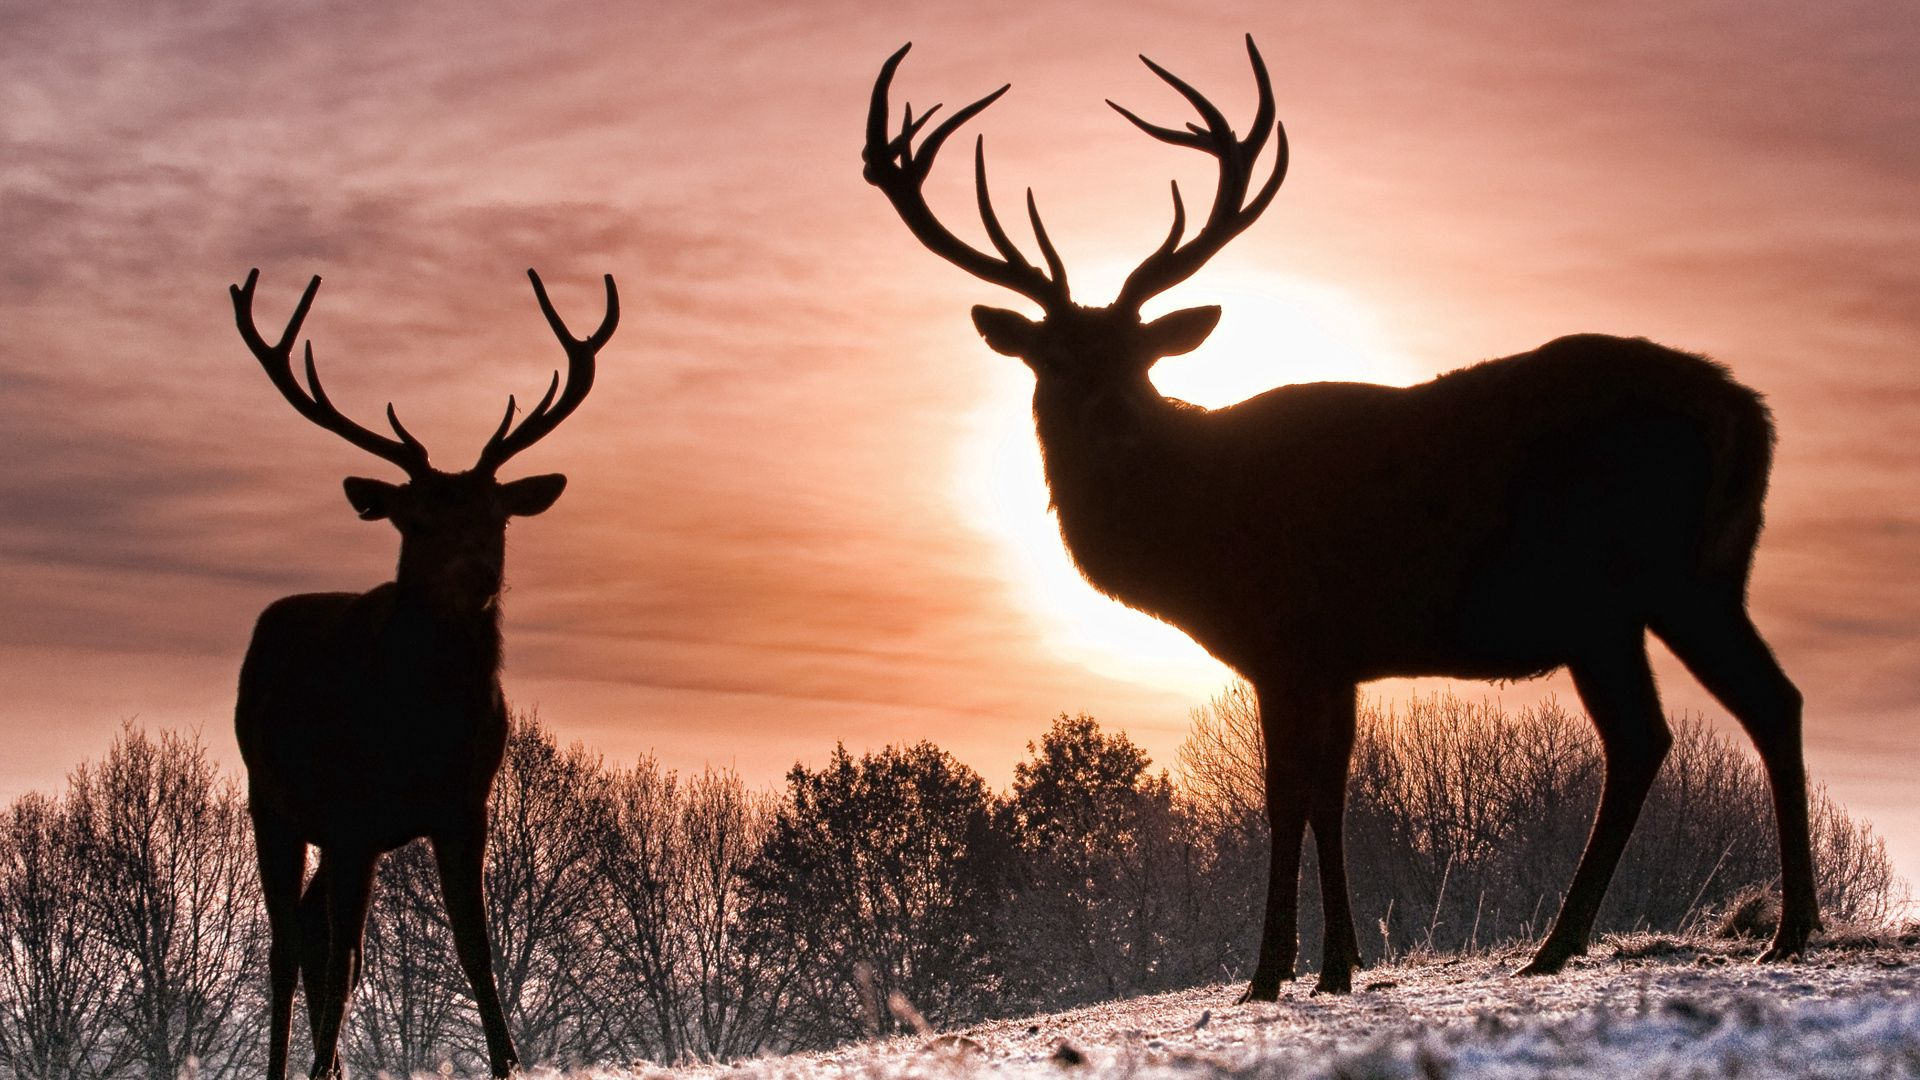 65140 download wallpaper Animals, Deers, Silhouette, Shadow, Nature, Stroll screensavers and pictures for free